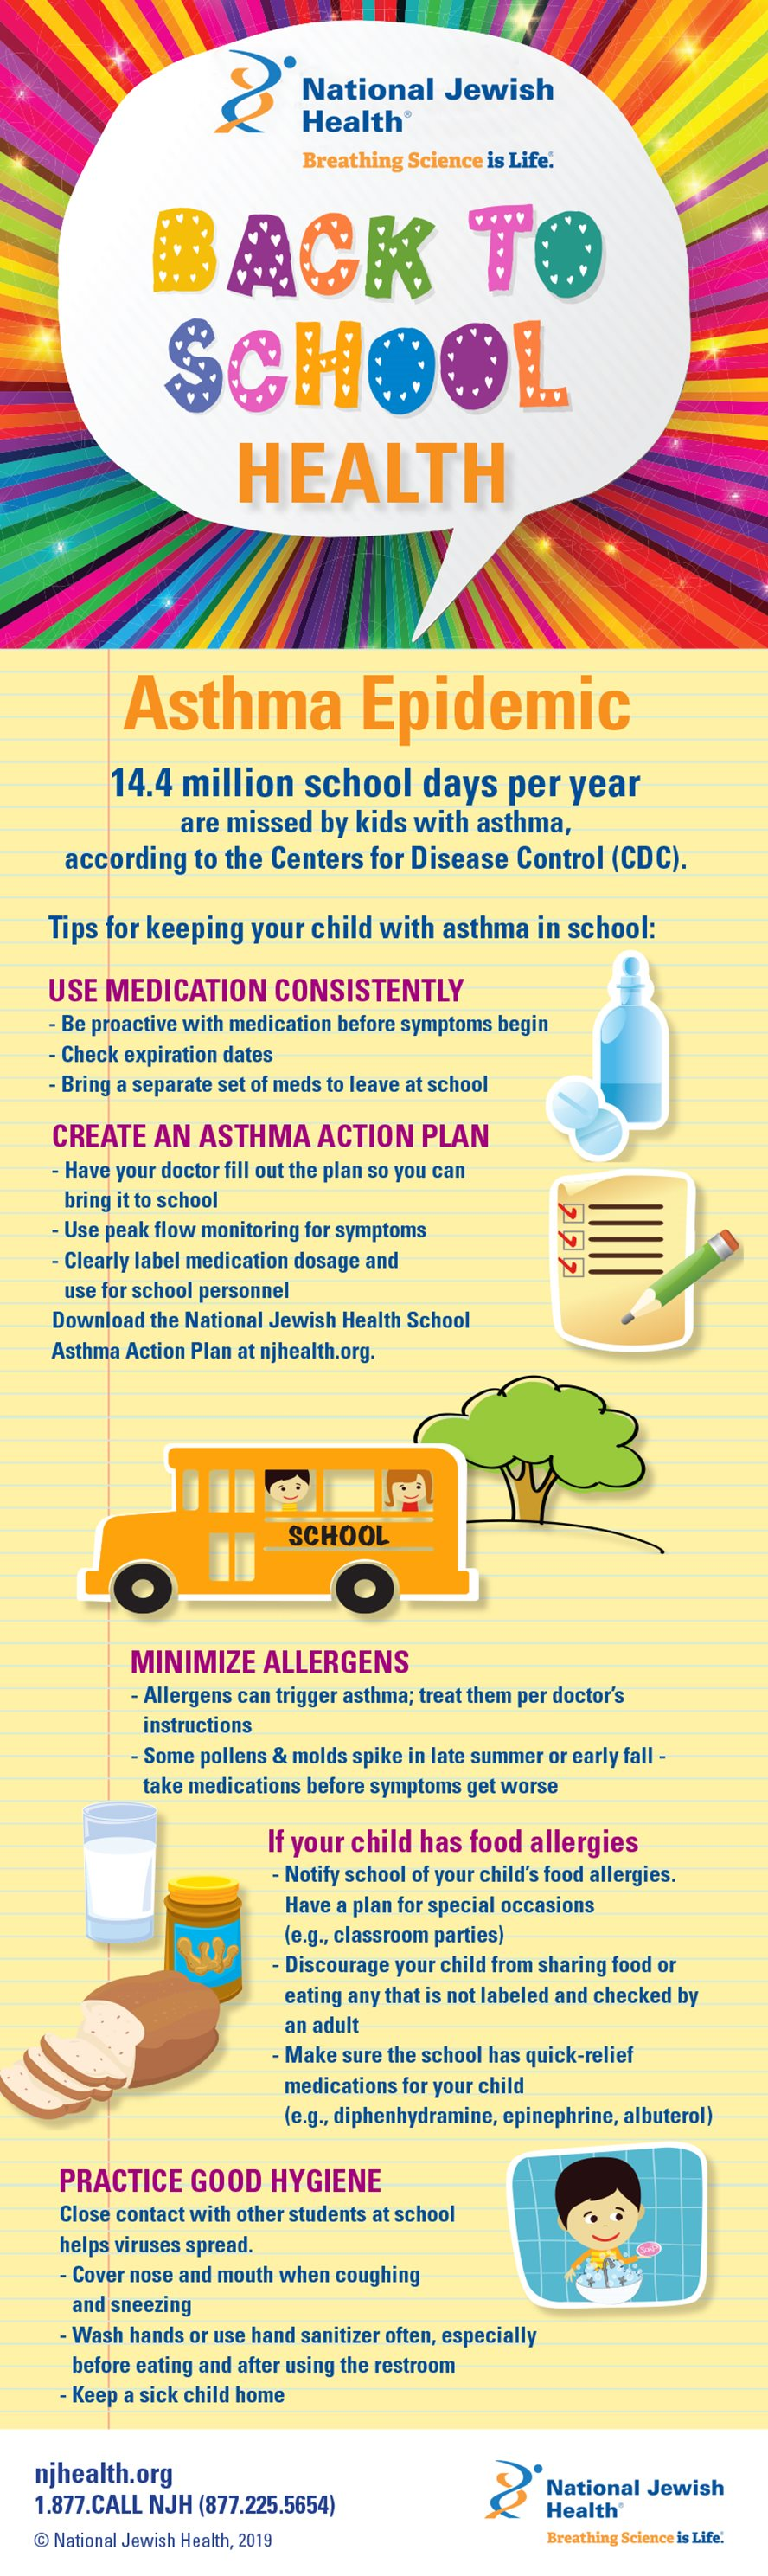 Asthma Epidemic: Pediatric Asthma and Allergies in School Infographic